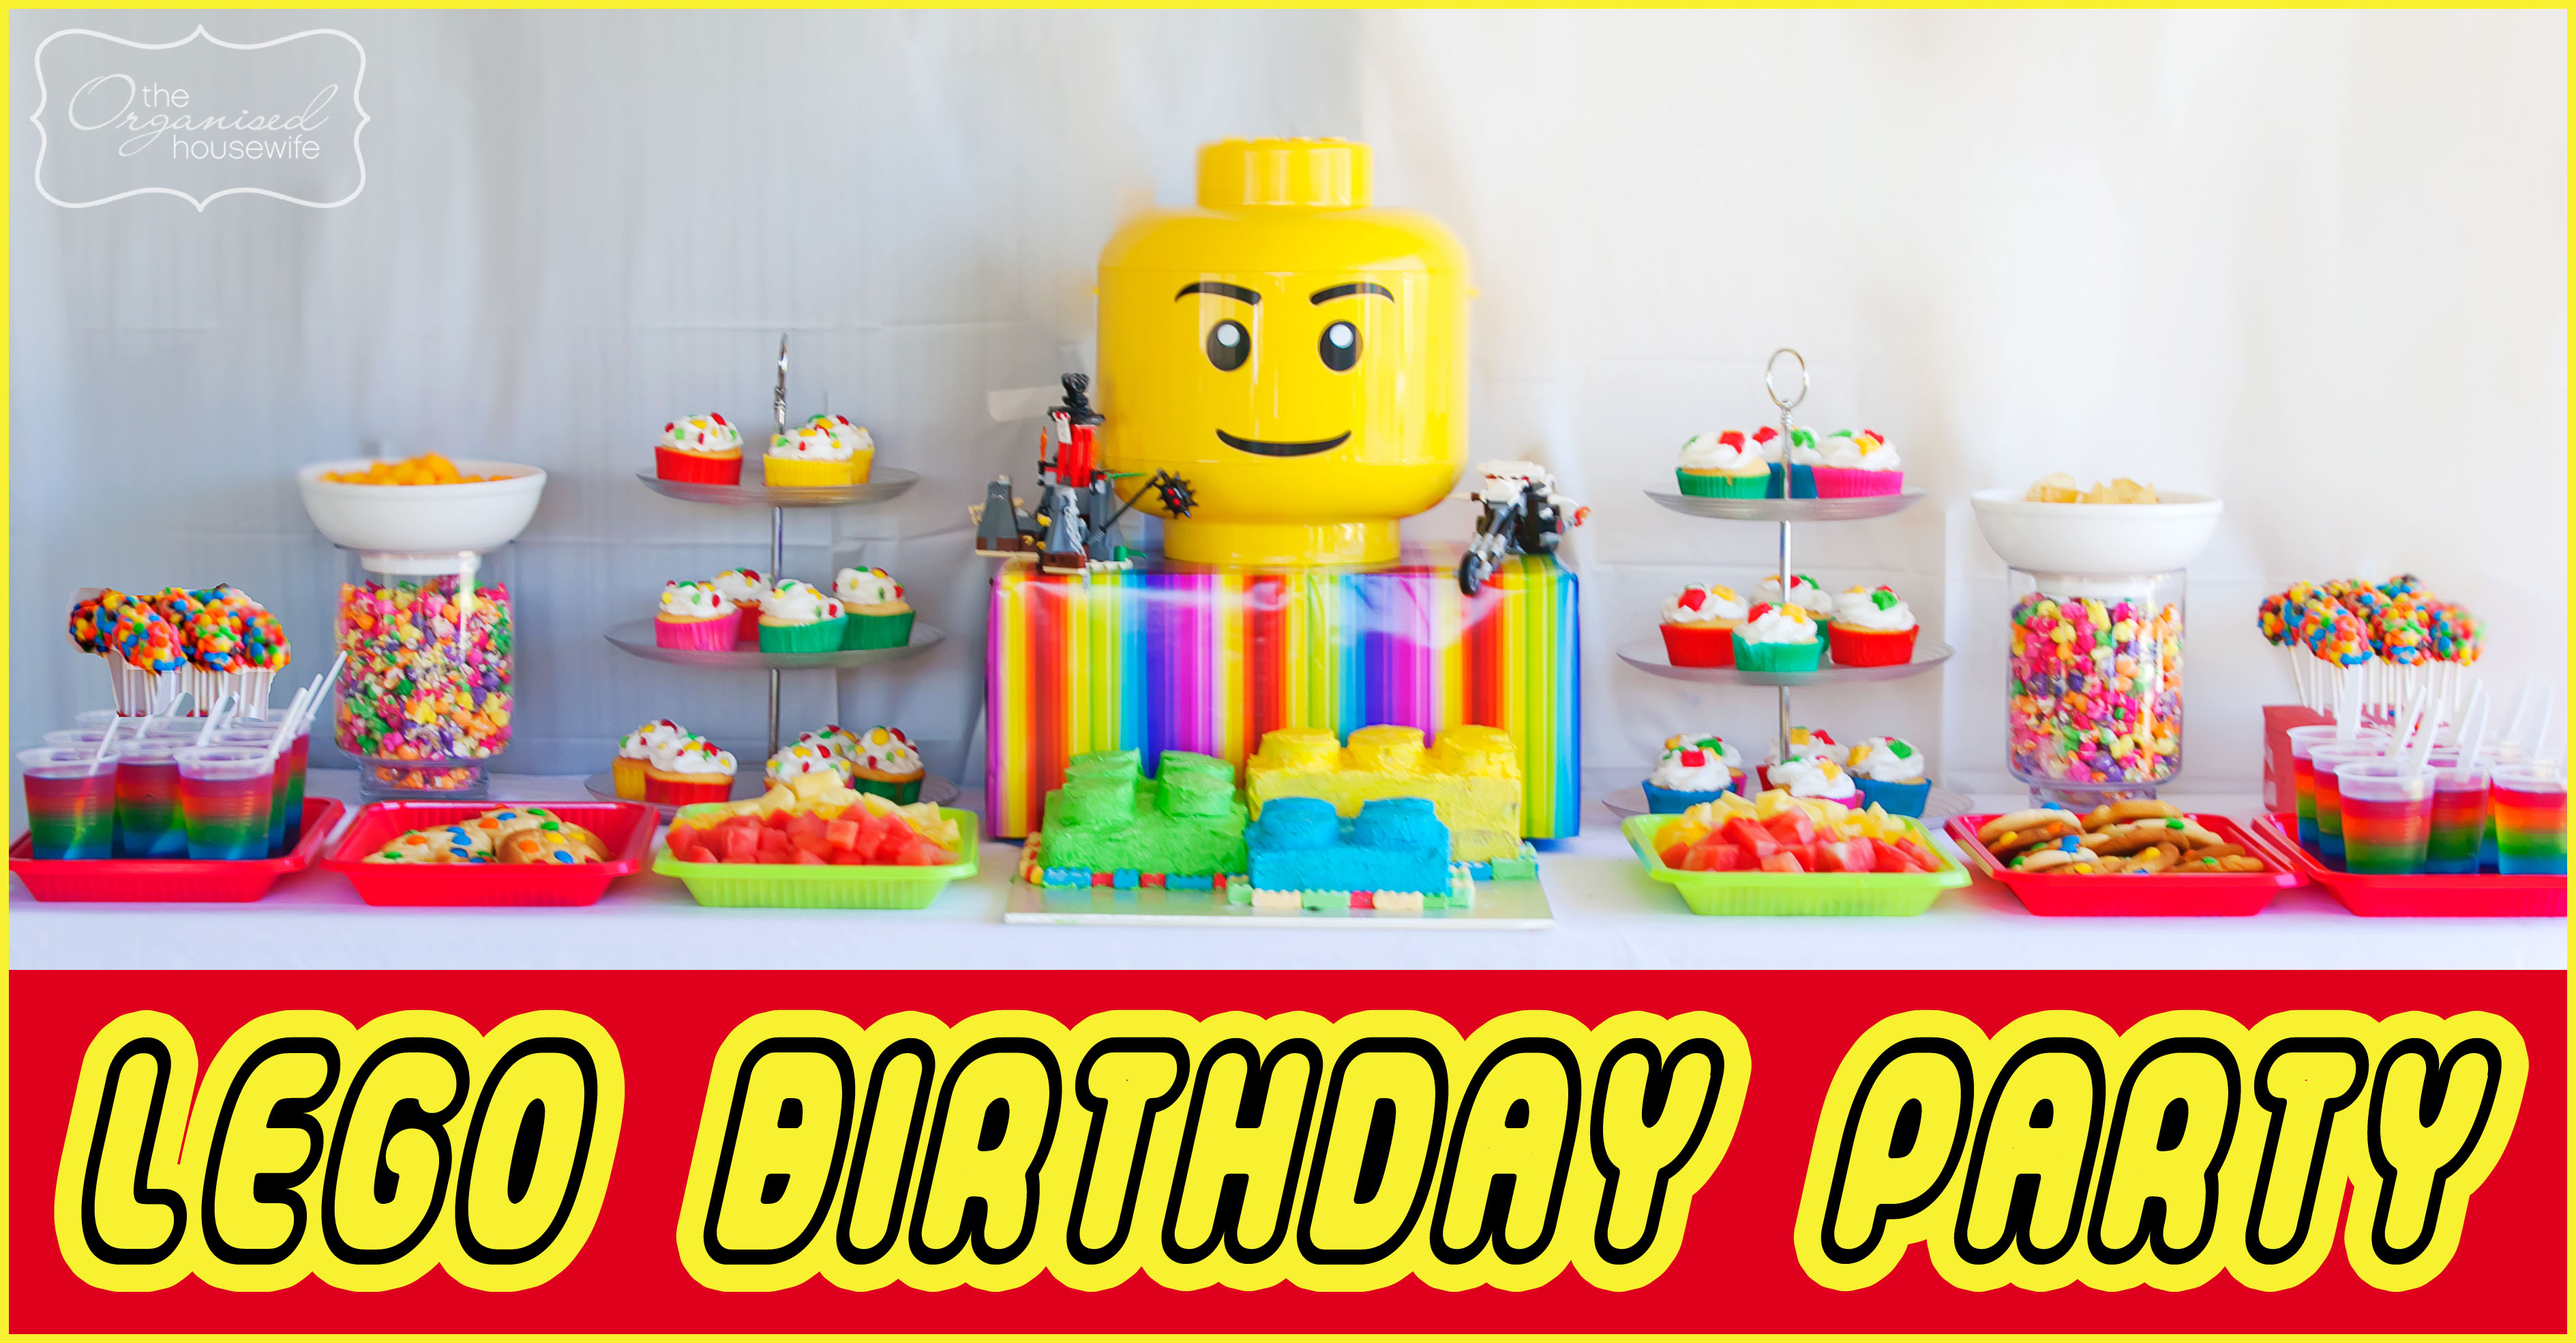 The Twins Parties 2 Parties In 1 Day Part 4 The Lego